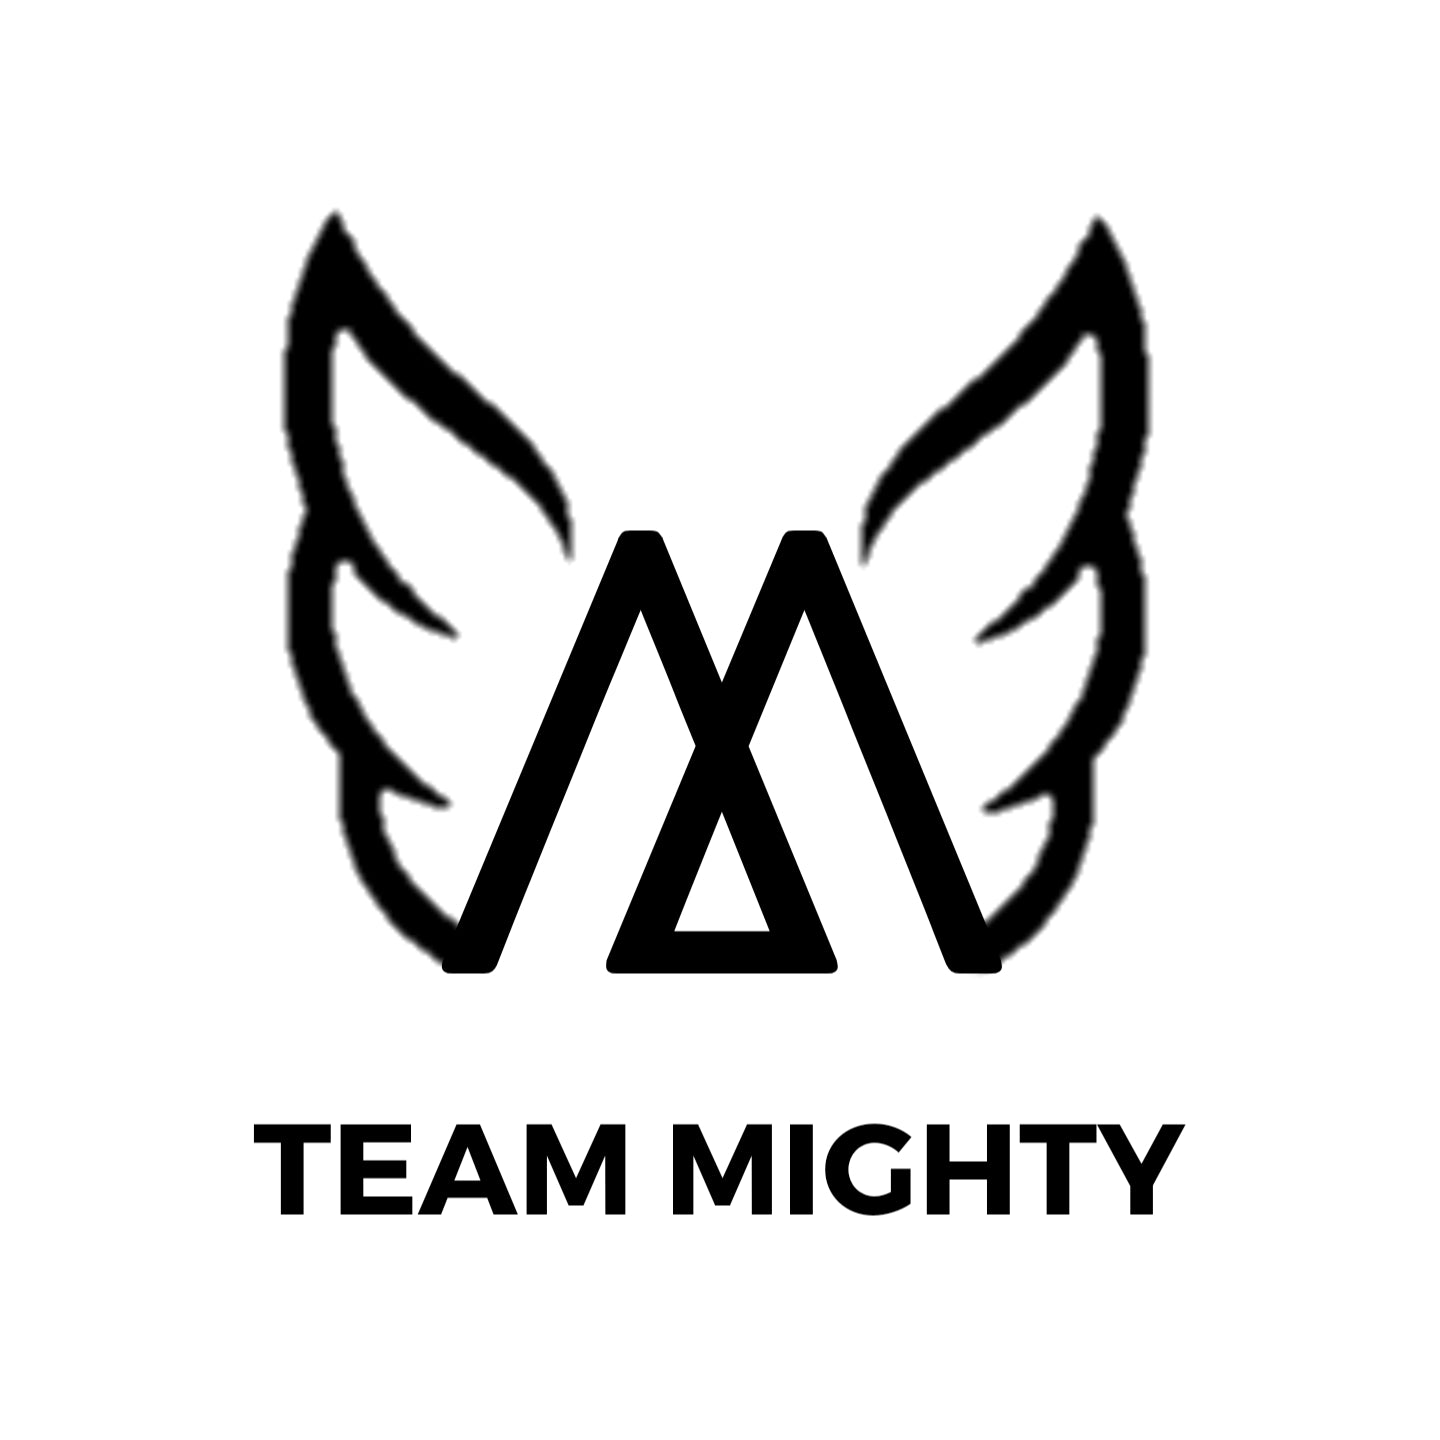 Team Mighty $1 Donation